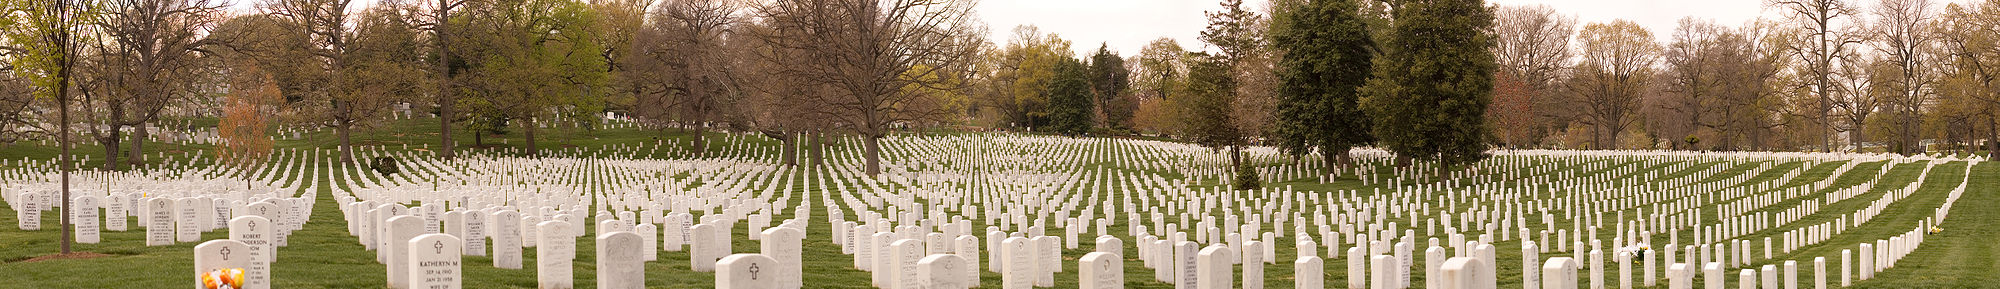 Panorama einer Sektion des Arlington National Cementery.